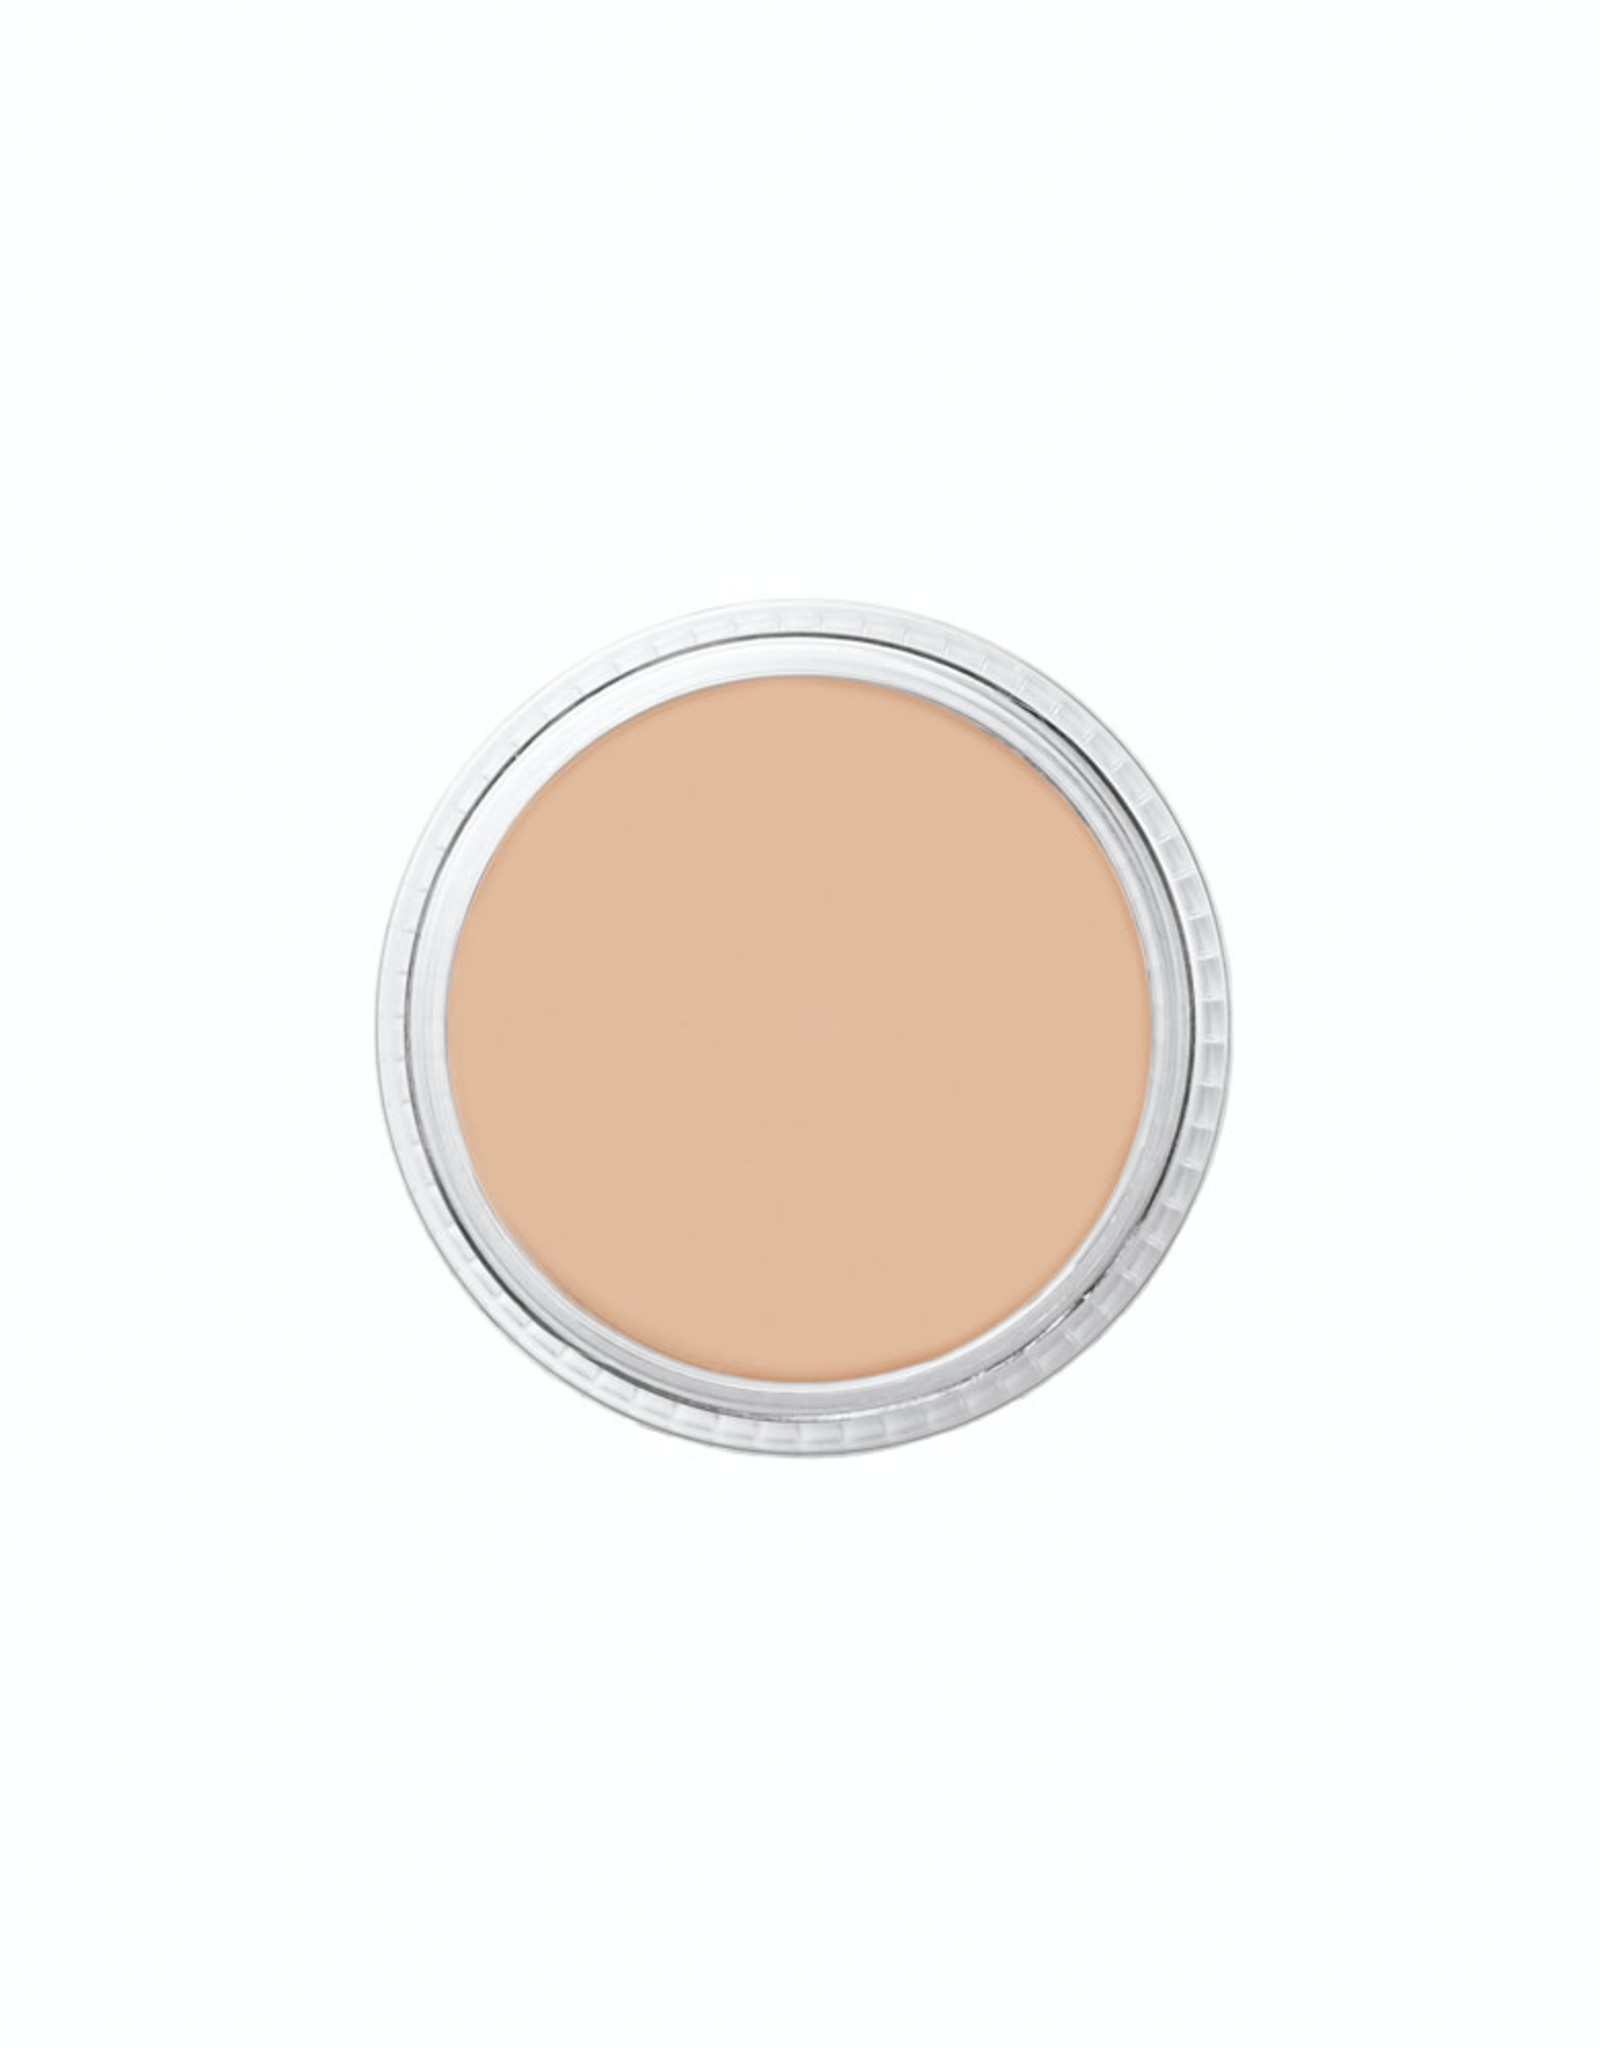 Ben Nye CONCEALER-COVERETTE, FAIR,.3 OZ